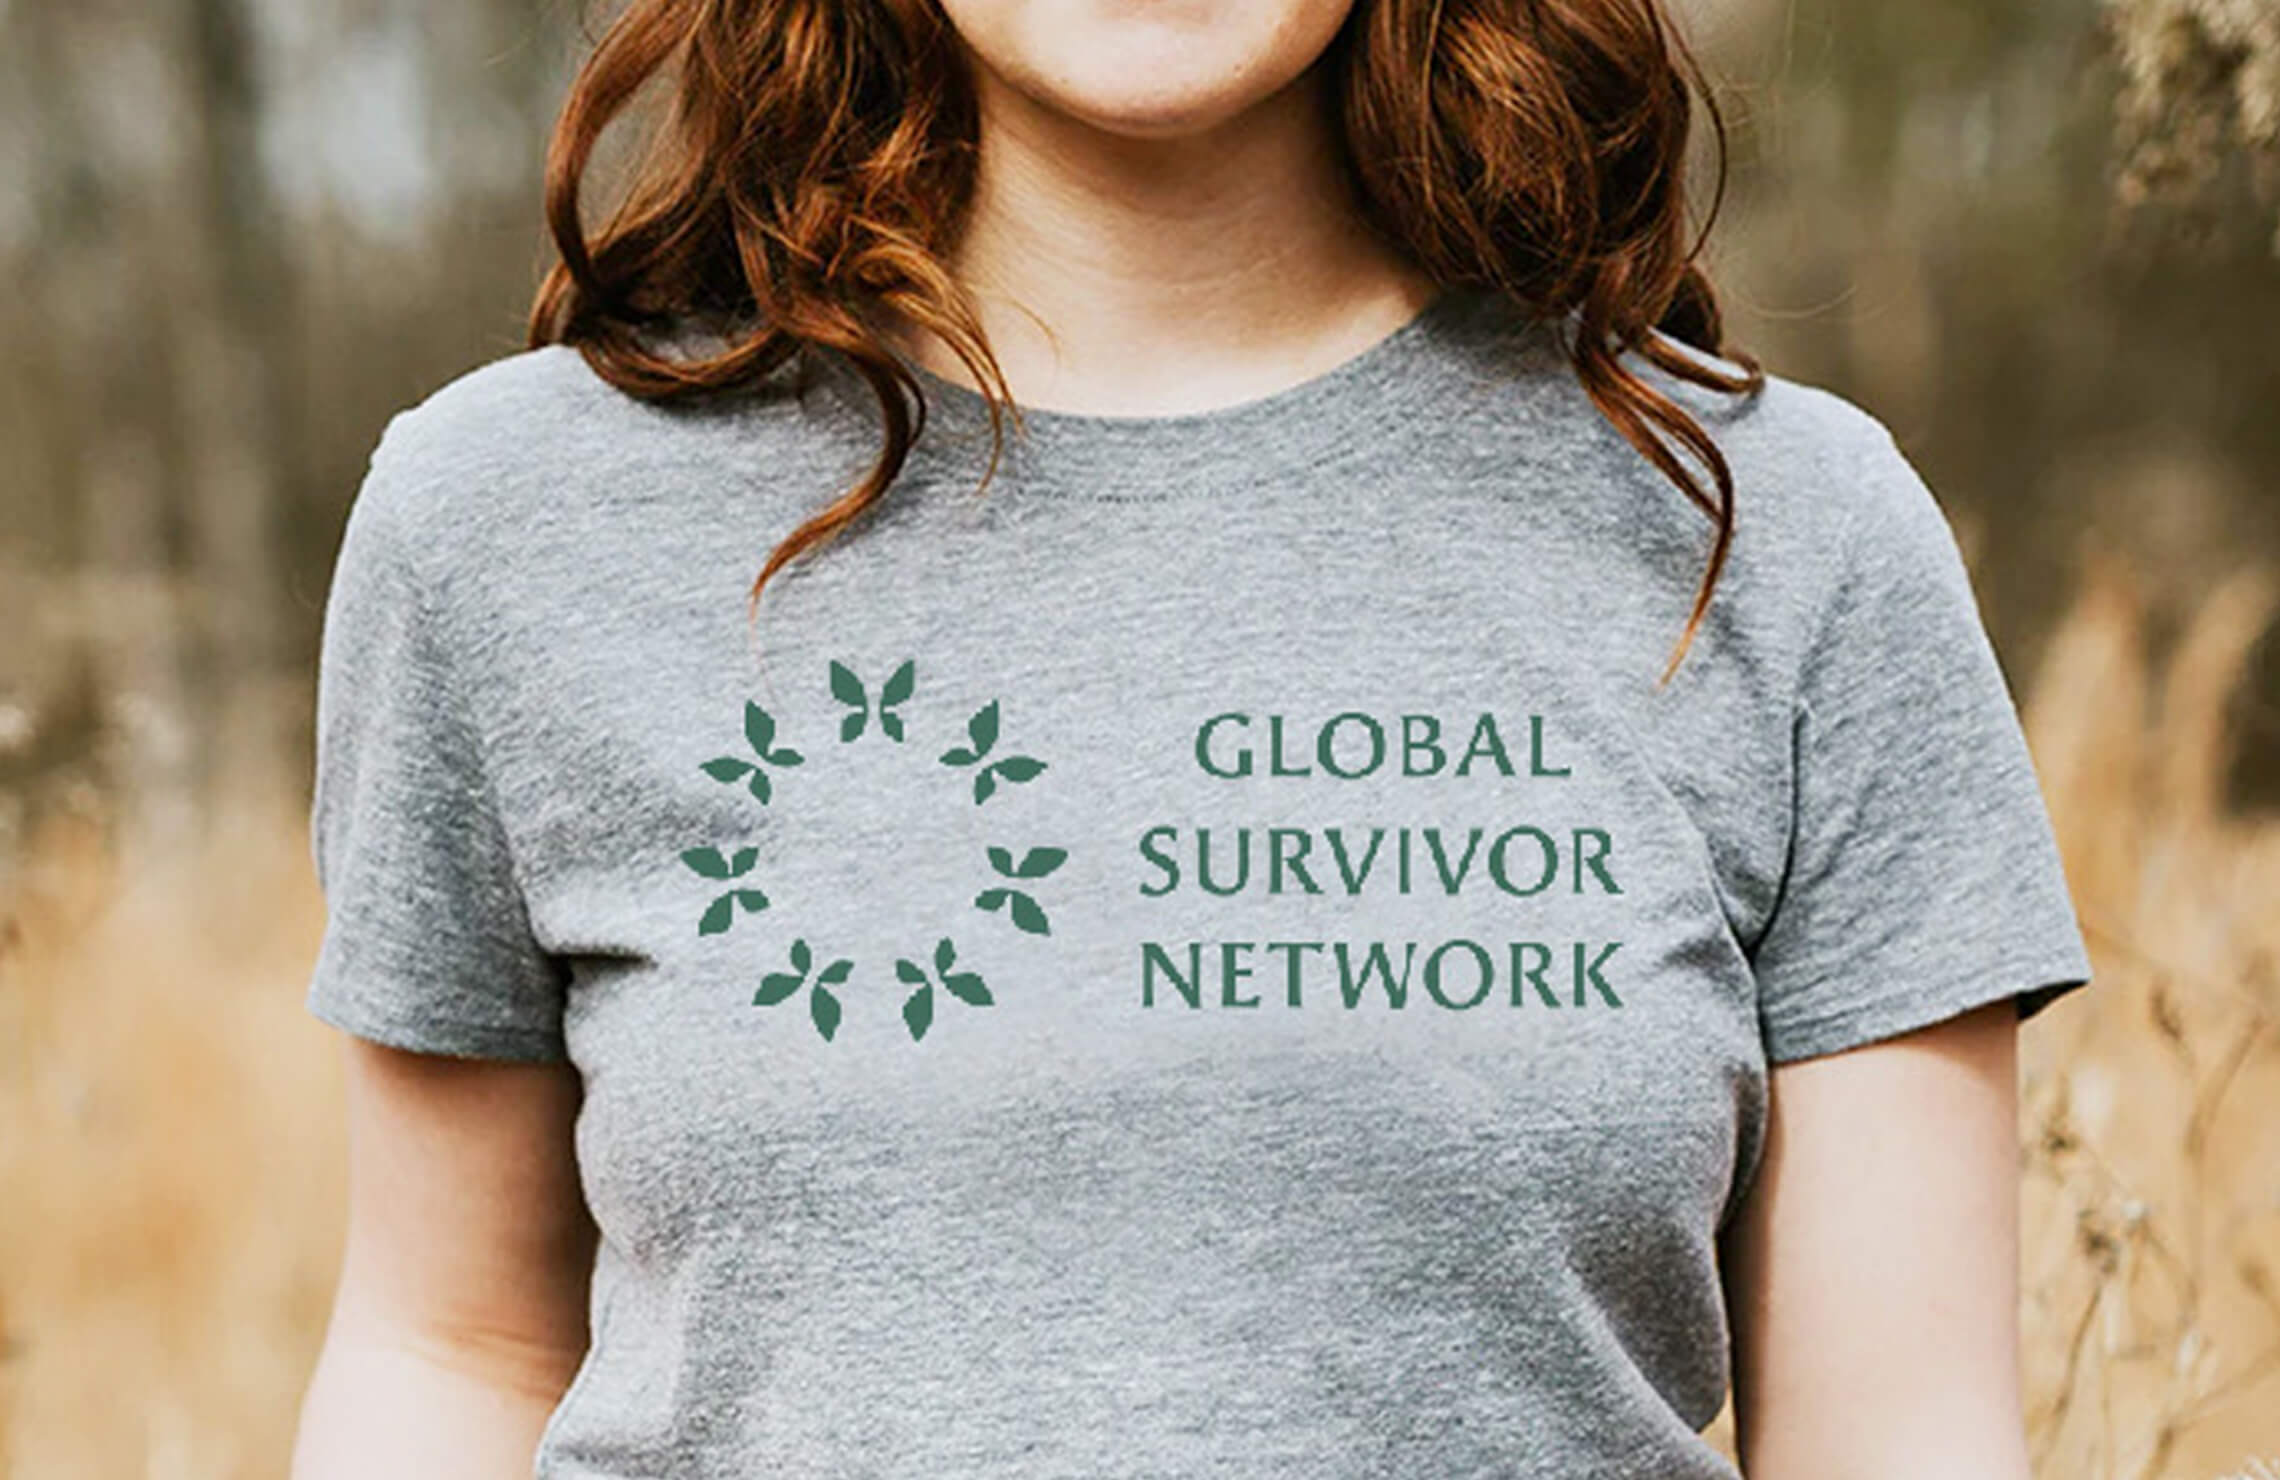 Global Survivor Network